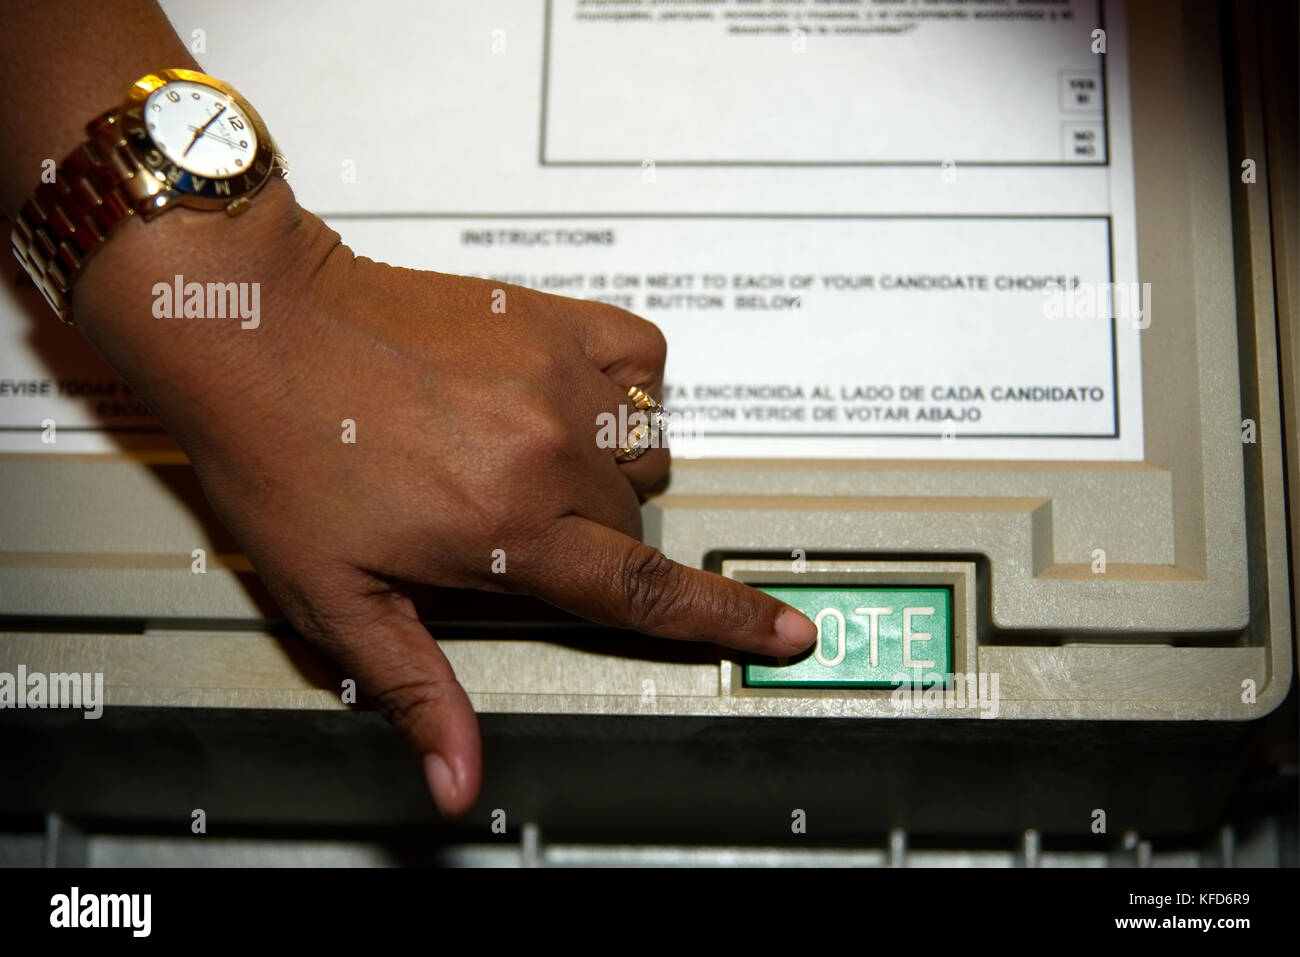 Voter casts the ballot on an electronic voting machine at a polling station on Election Day, in Philadelphia, PA. - Stock Image